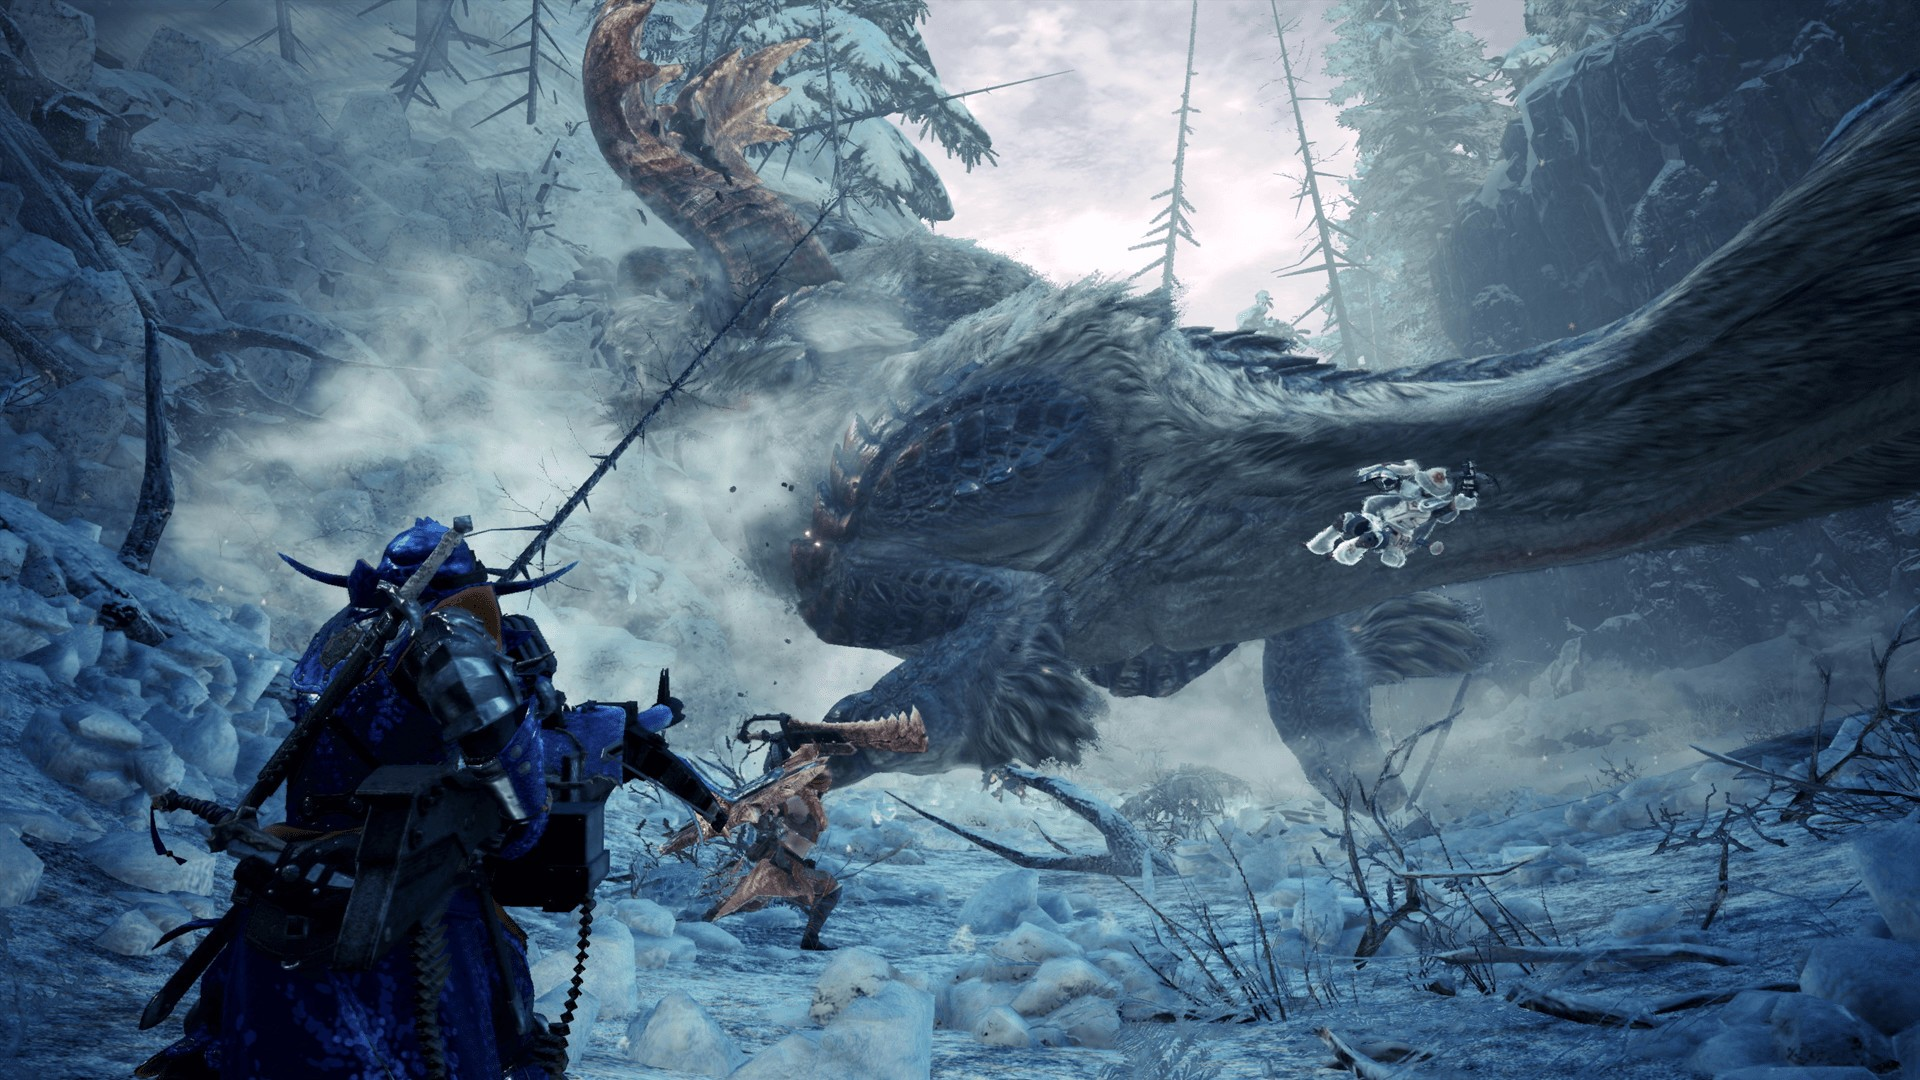 monster-hunter-world-iceborne-wallpaper-4.jpg